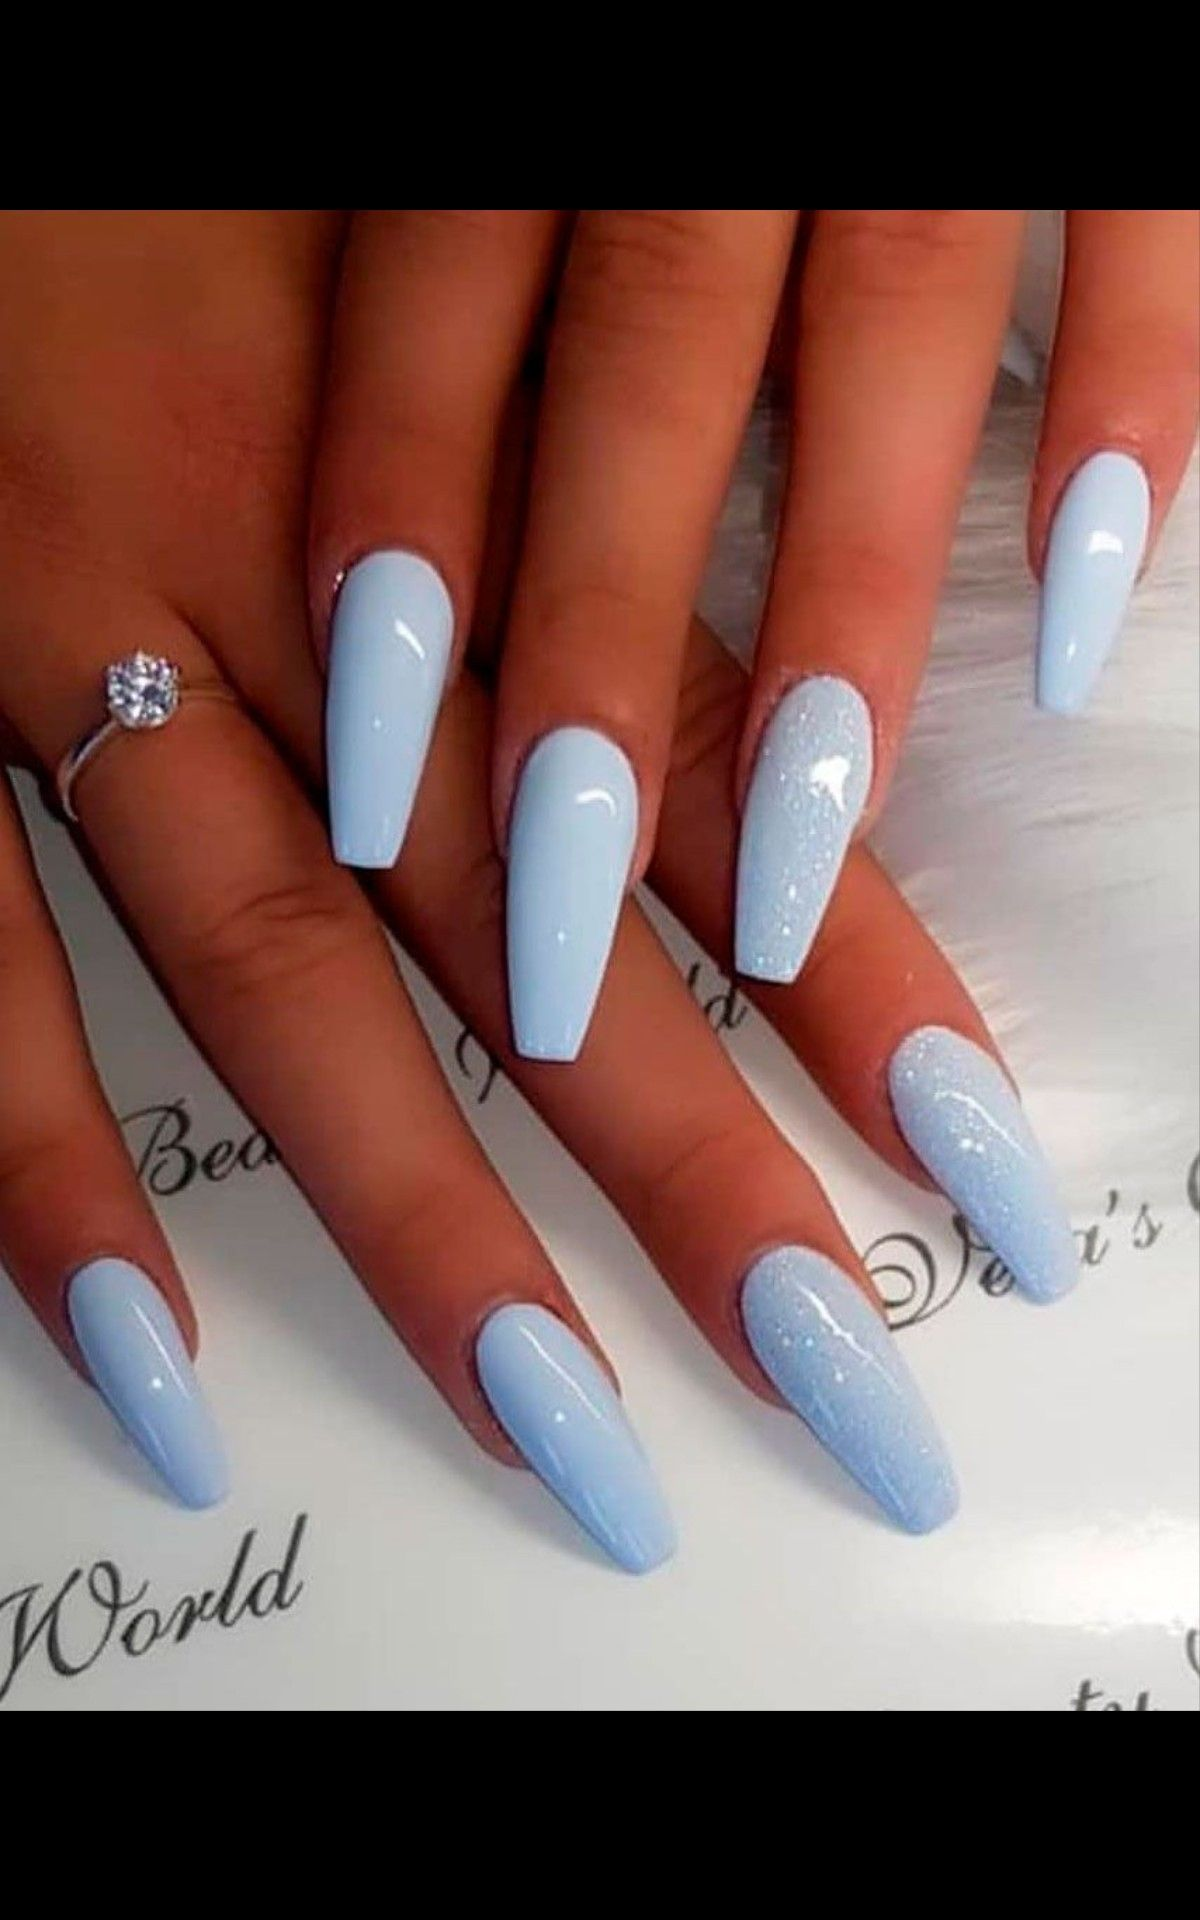 Pastel Blue Nails In 2020 Best Acrylic Nails Blue Acrylic Nails Summer Acrylic Nails